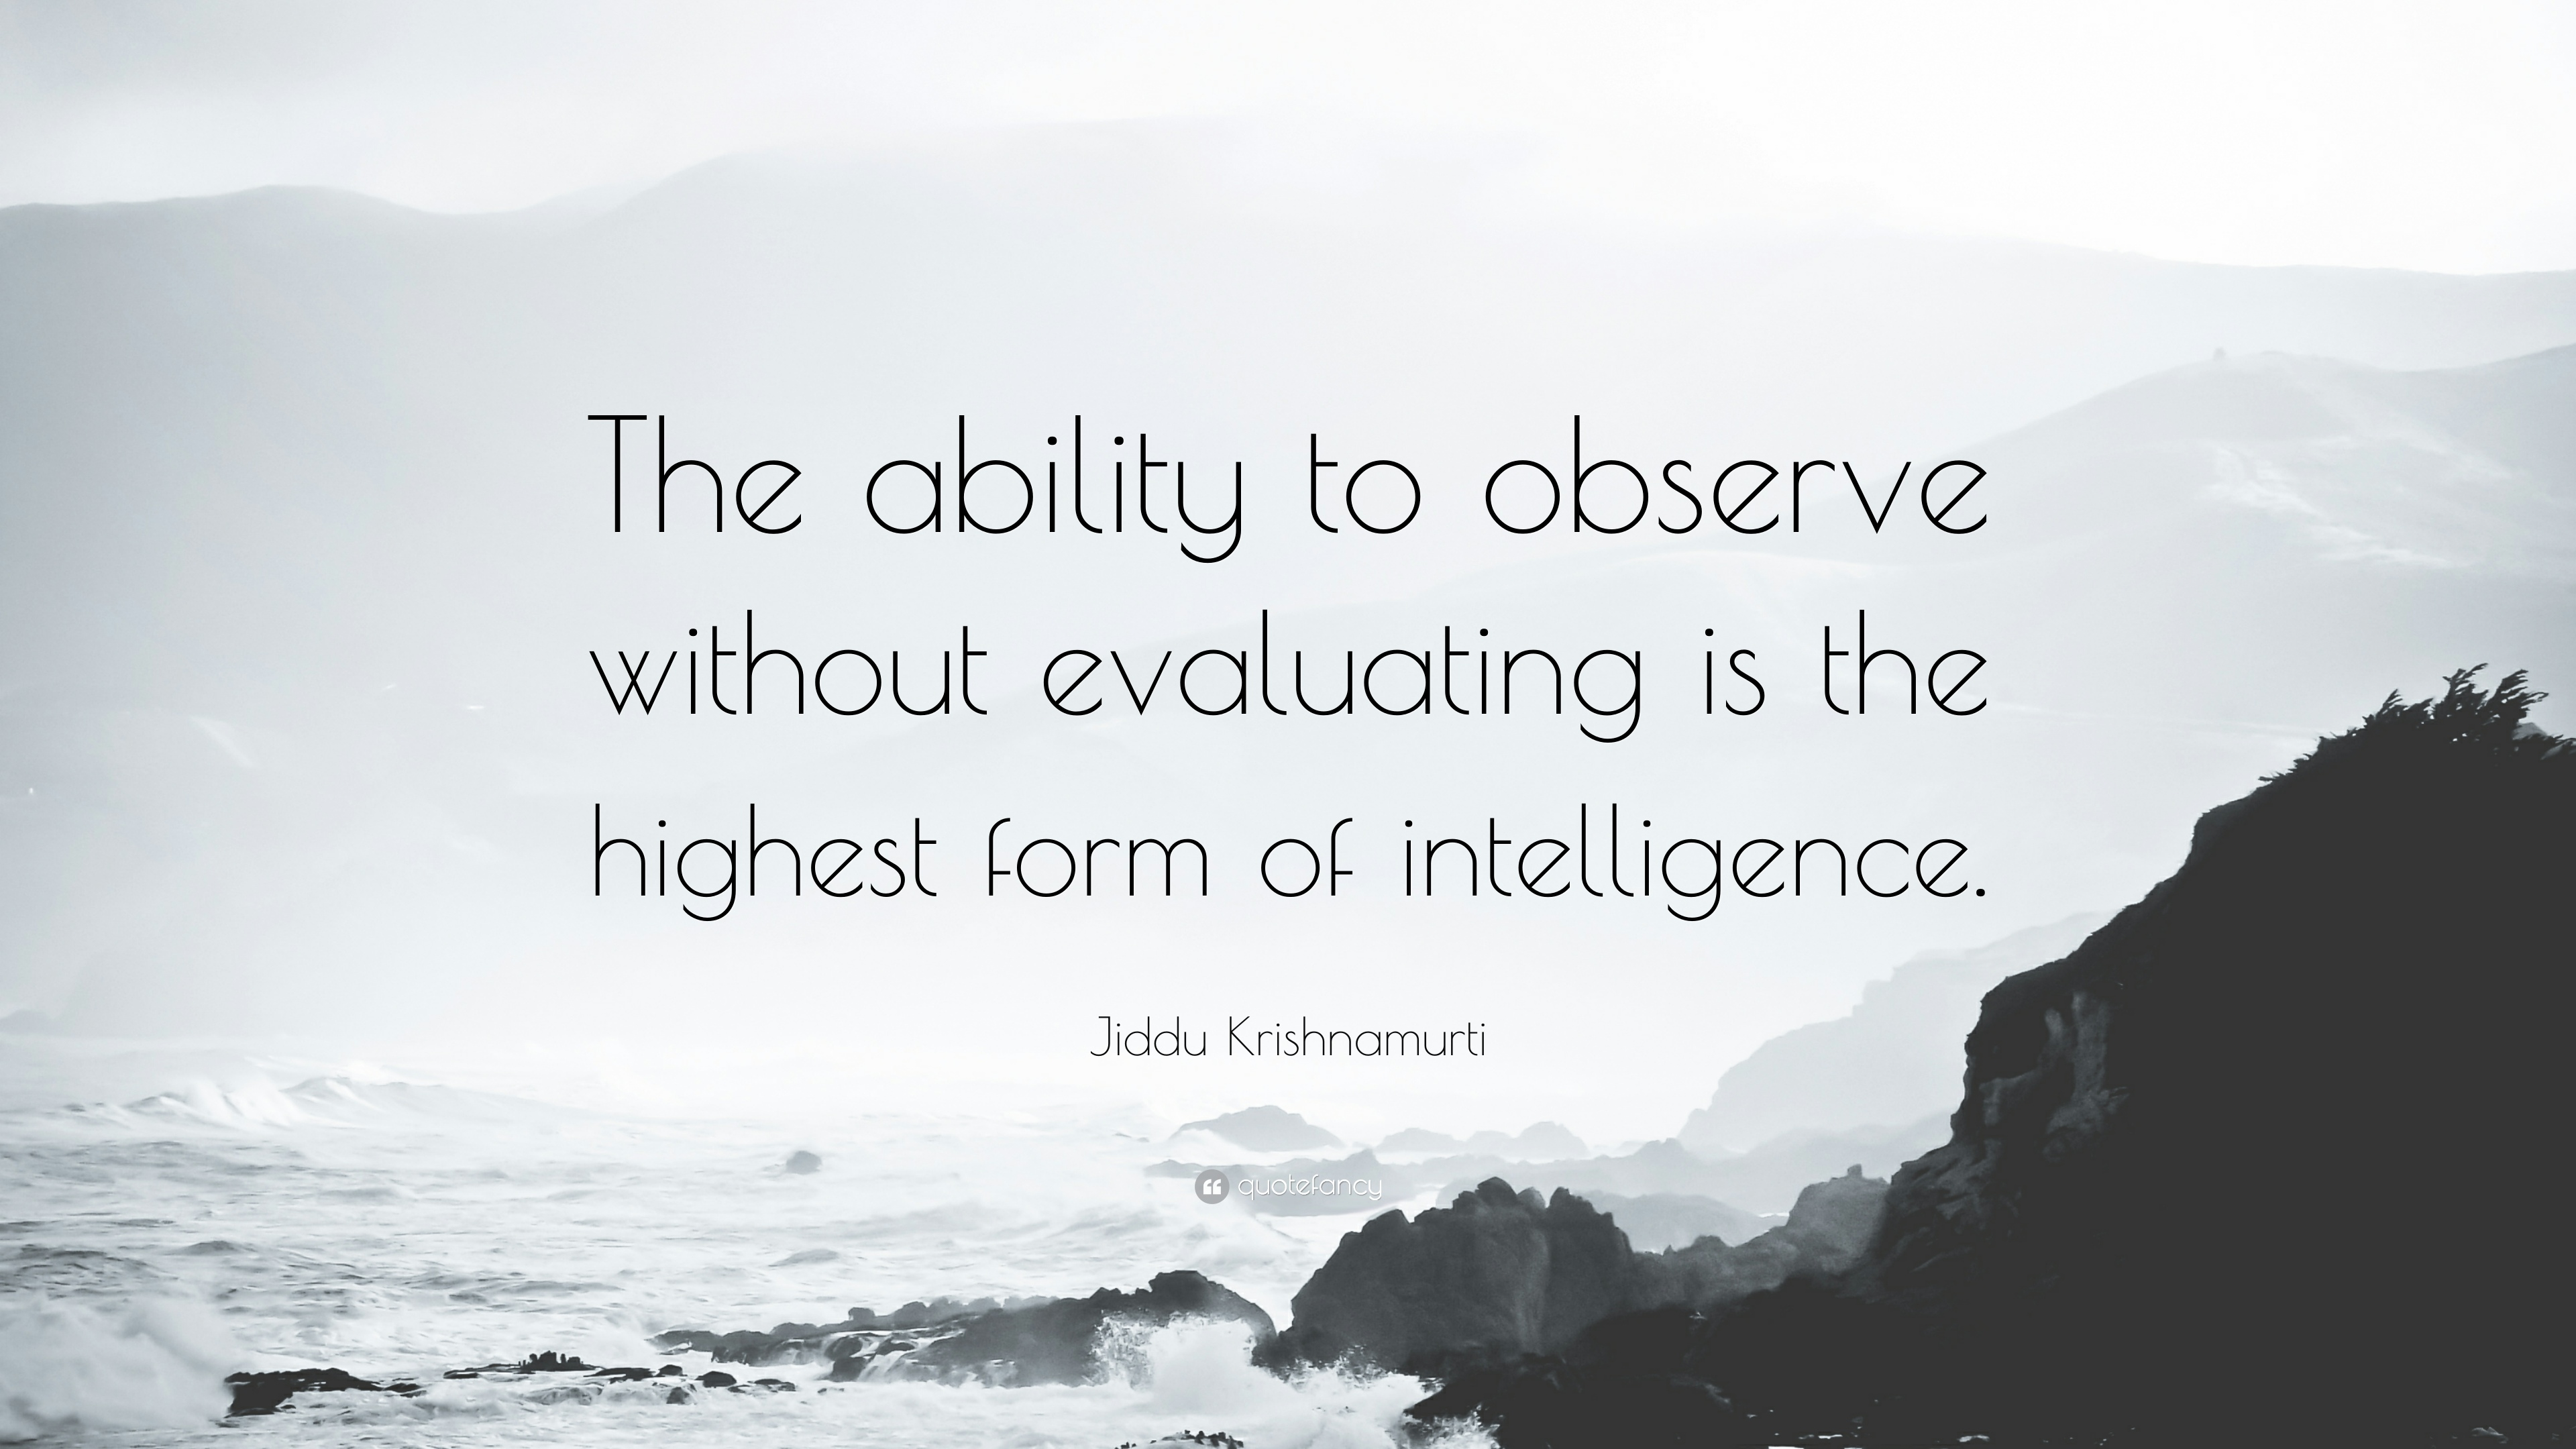 Intelligence Quotes: U201cThe Ability To Observe Without Evaluating Is The  Highest Form Of Intelligence